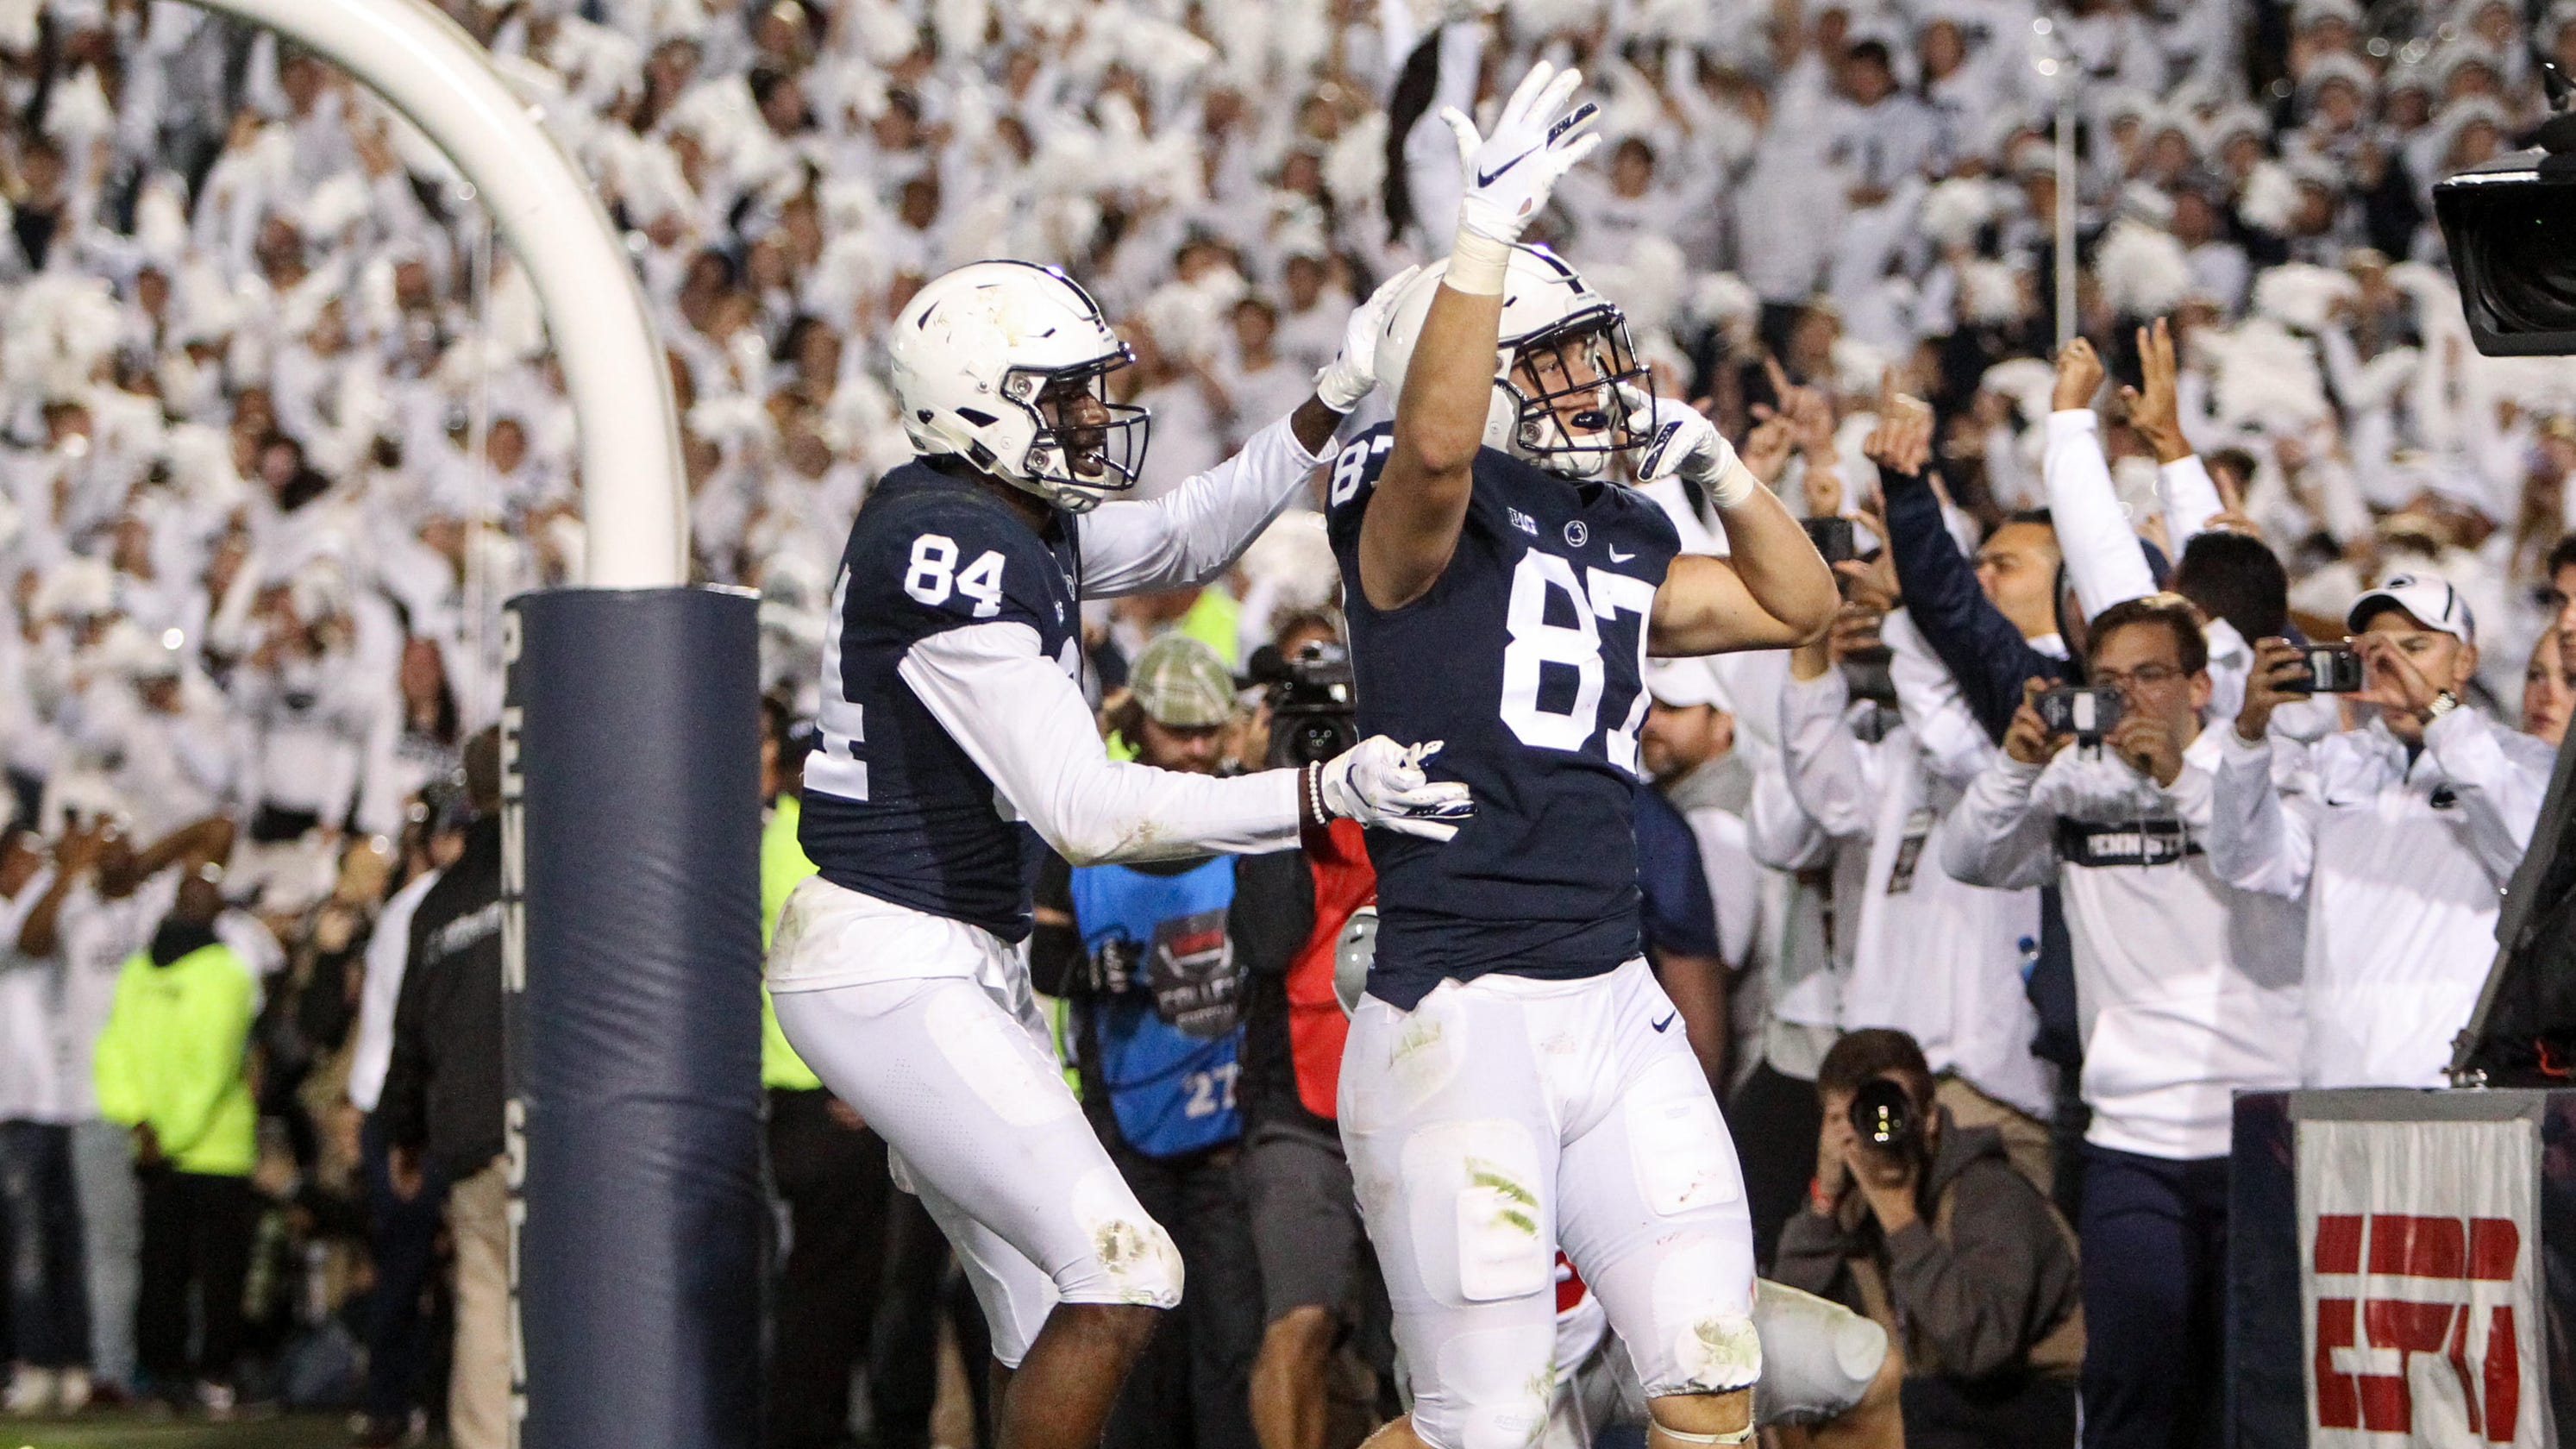 how to watch penn state football online